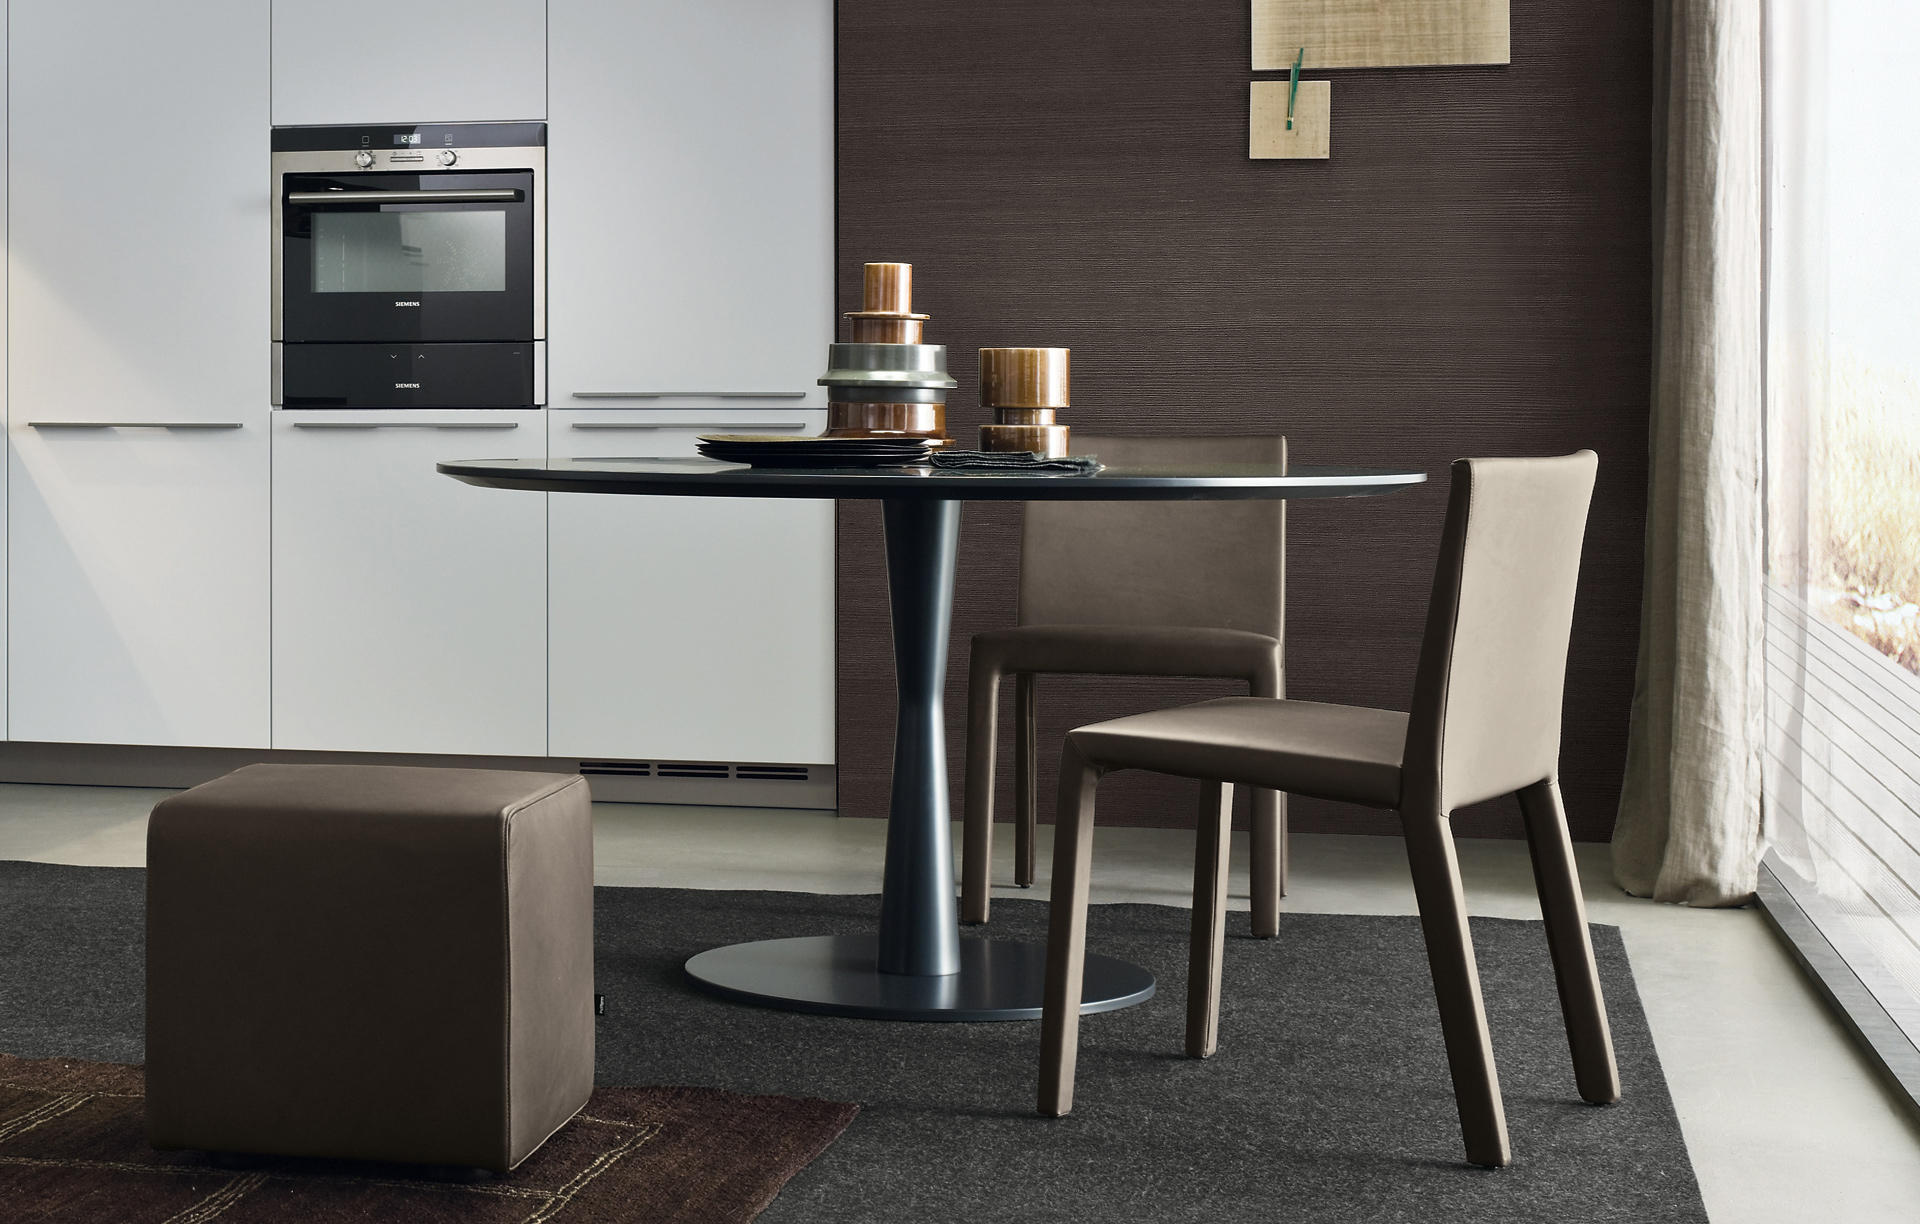 Flute Coffe Table Side Tables From Poliform Architonic